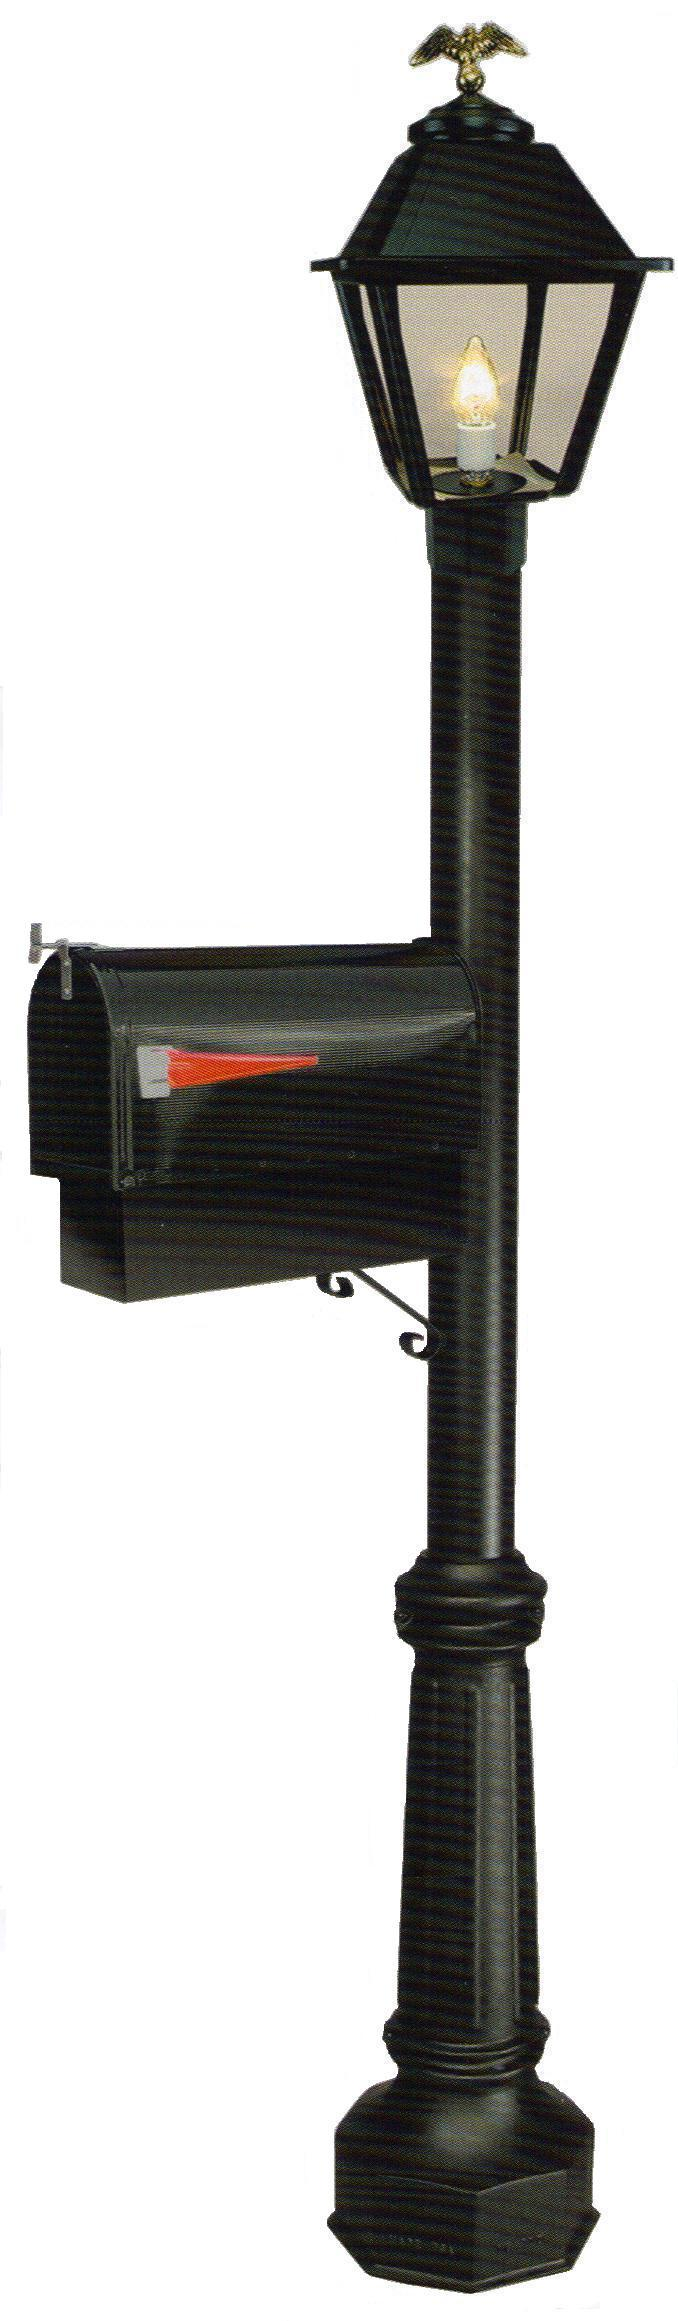 Mailbox post with electric gas light